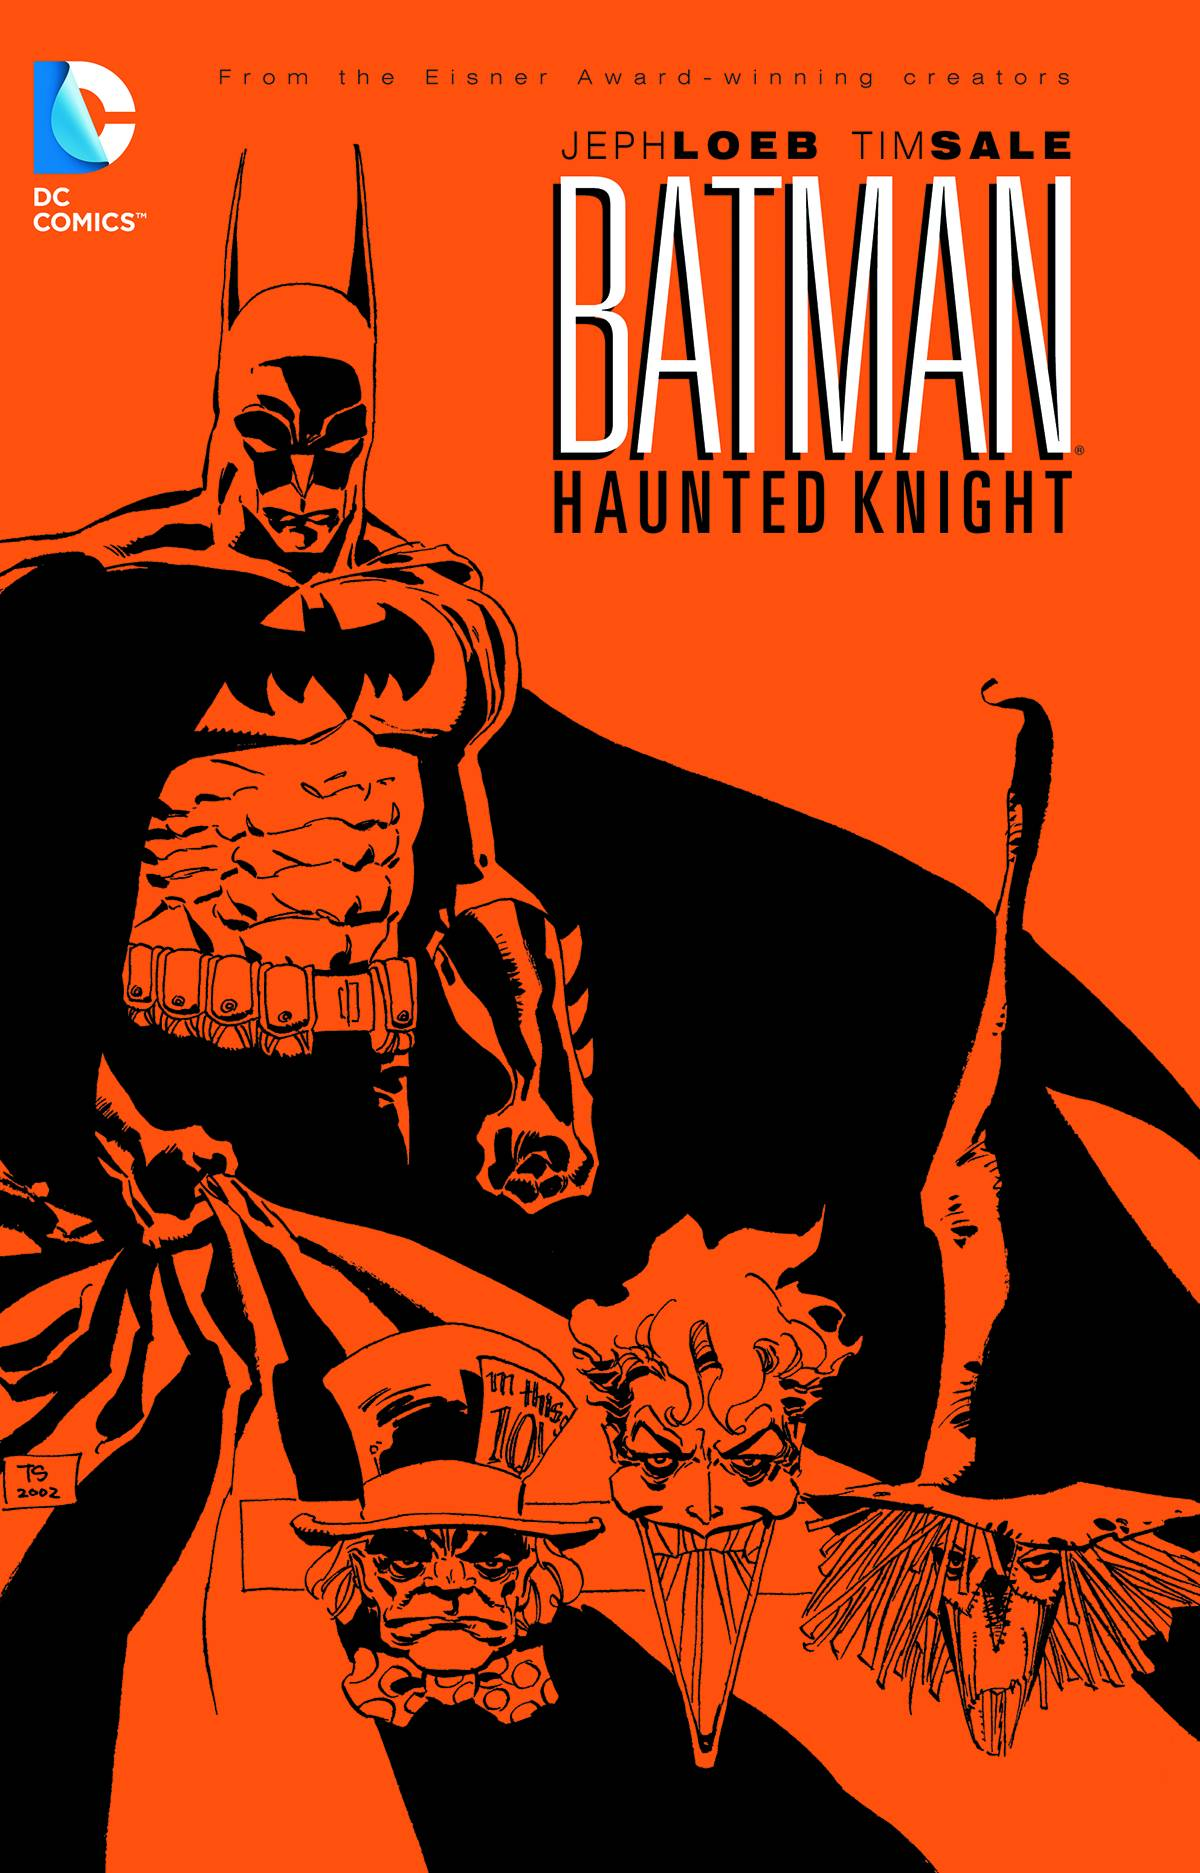 BATMAN: HAUNTED KNIGHT [by Jeph Loeb & Tim Sale]